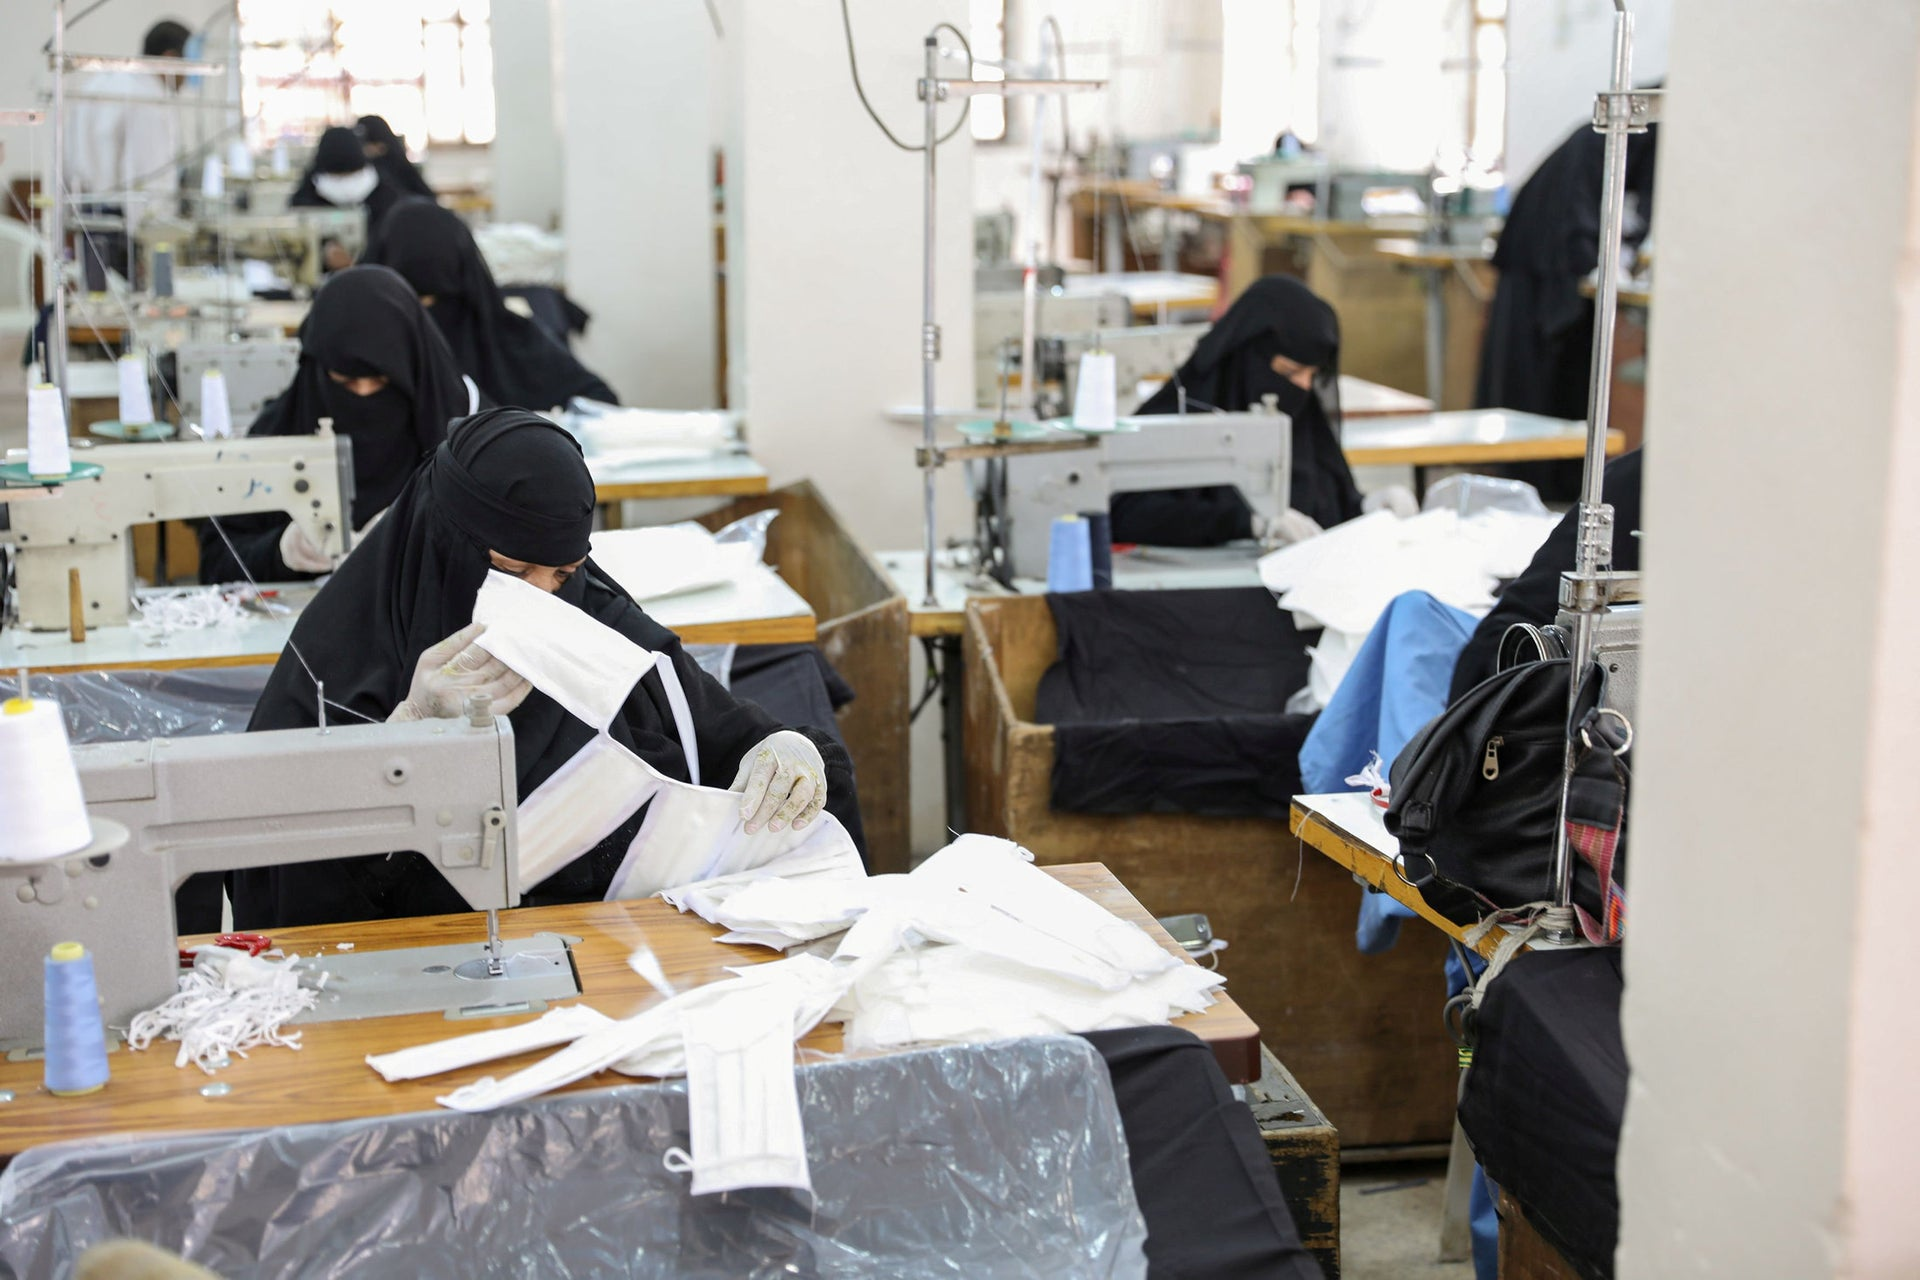 Yemeni women work to manufacture protective face masks at a textile factory in Sanaa, Yemen, March 17, 2020.